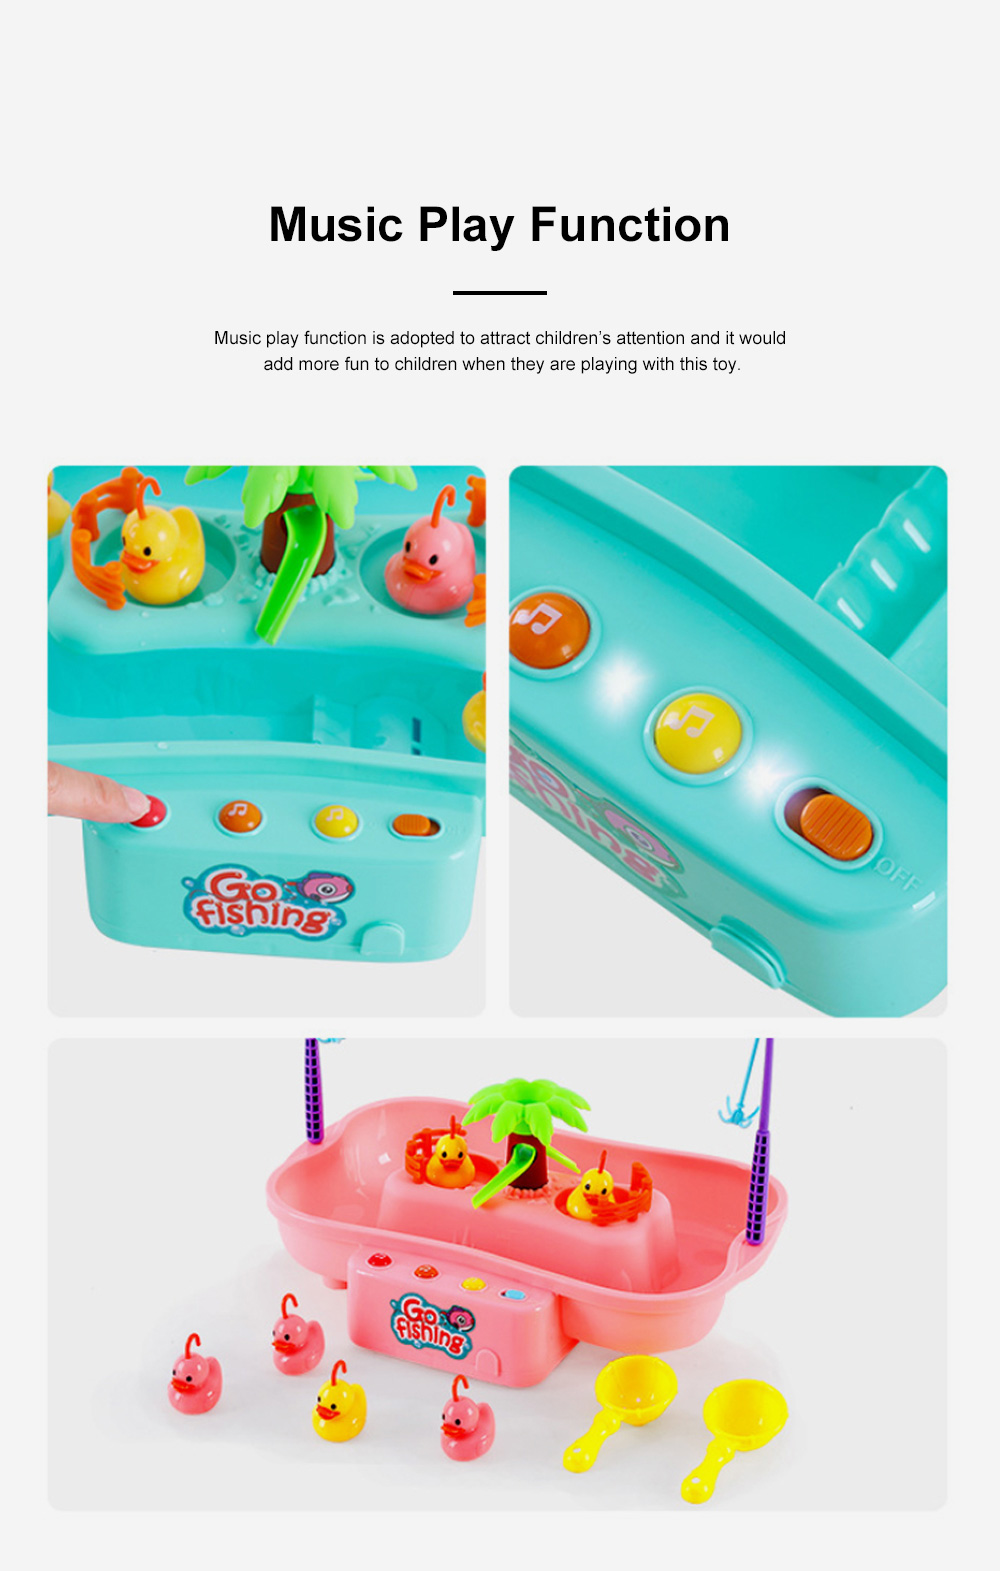 Rotation Ducks Toys Fishing Game with Music Play, Children Splashing Puzzle Game Parent-Children Interaction 3